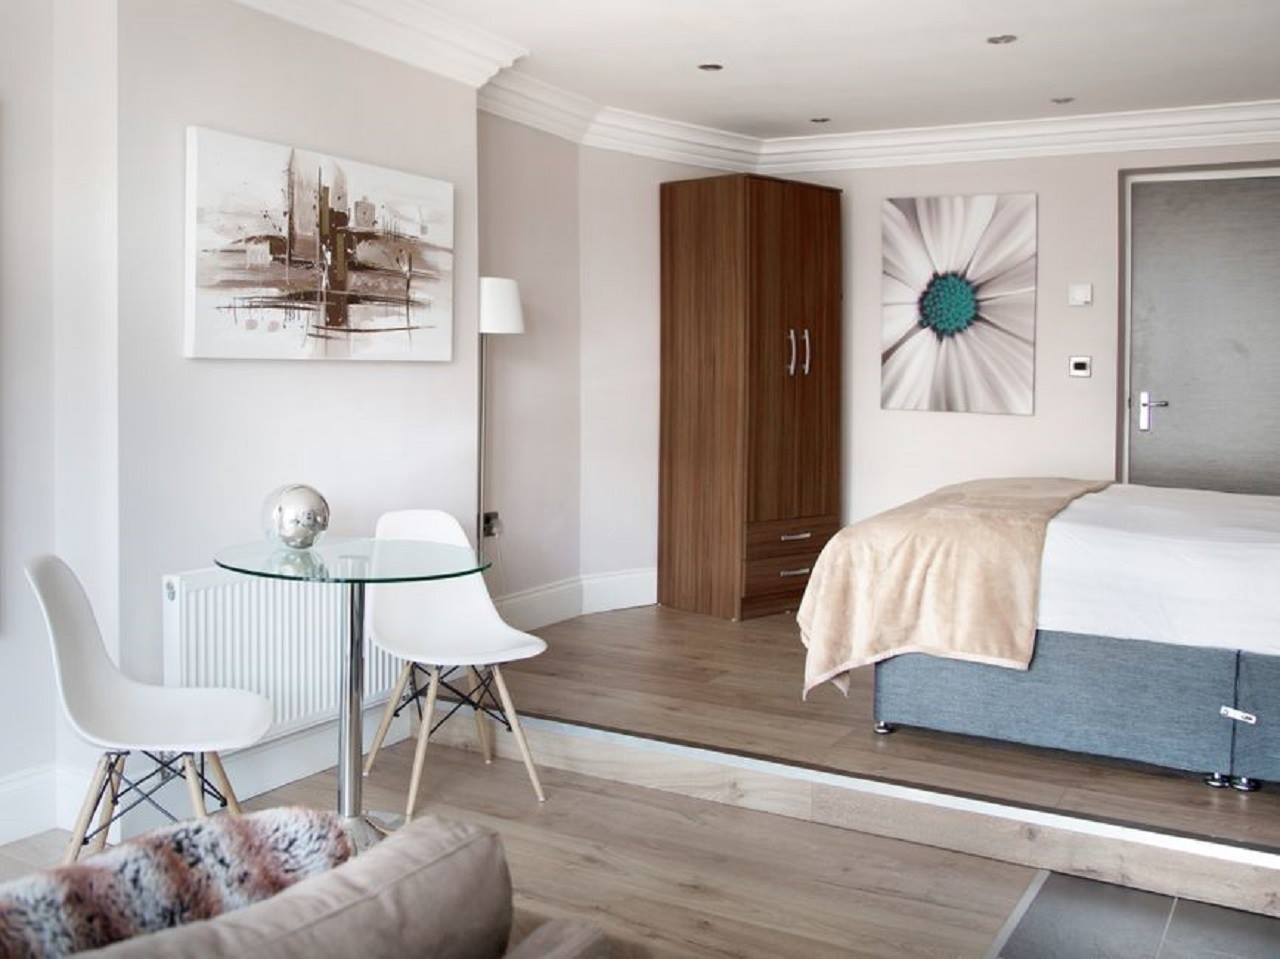 Image by Harrogate Lifestyle Apartments